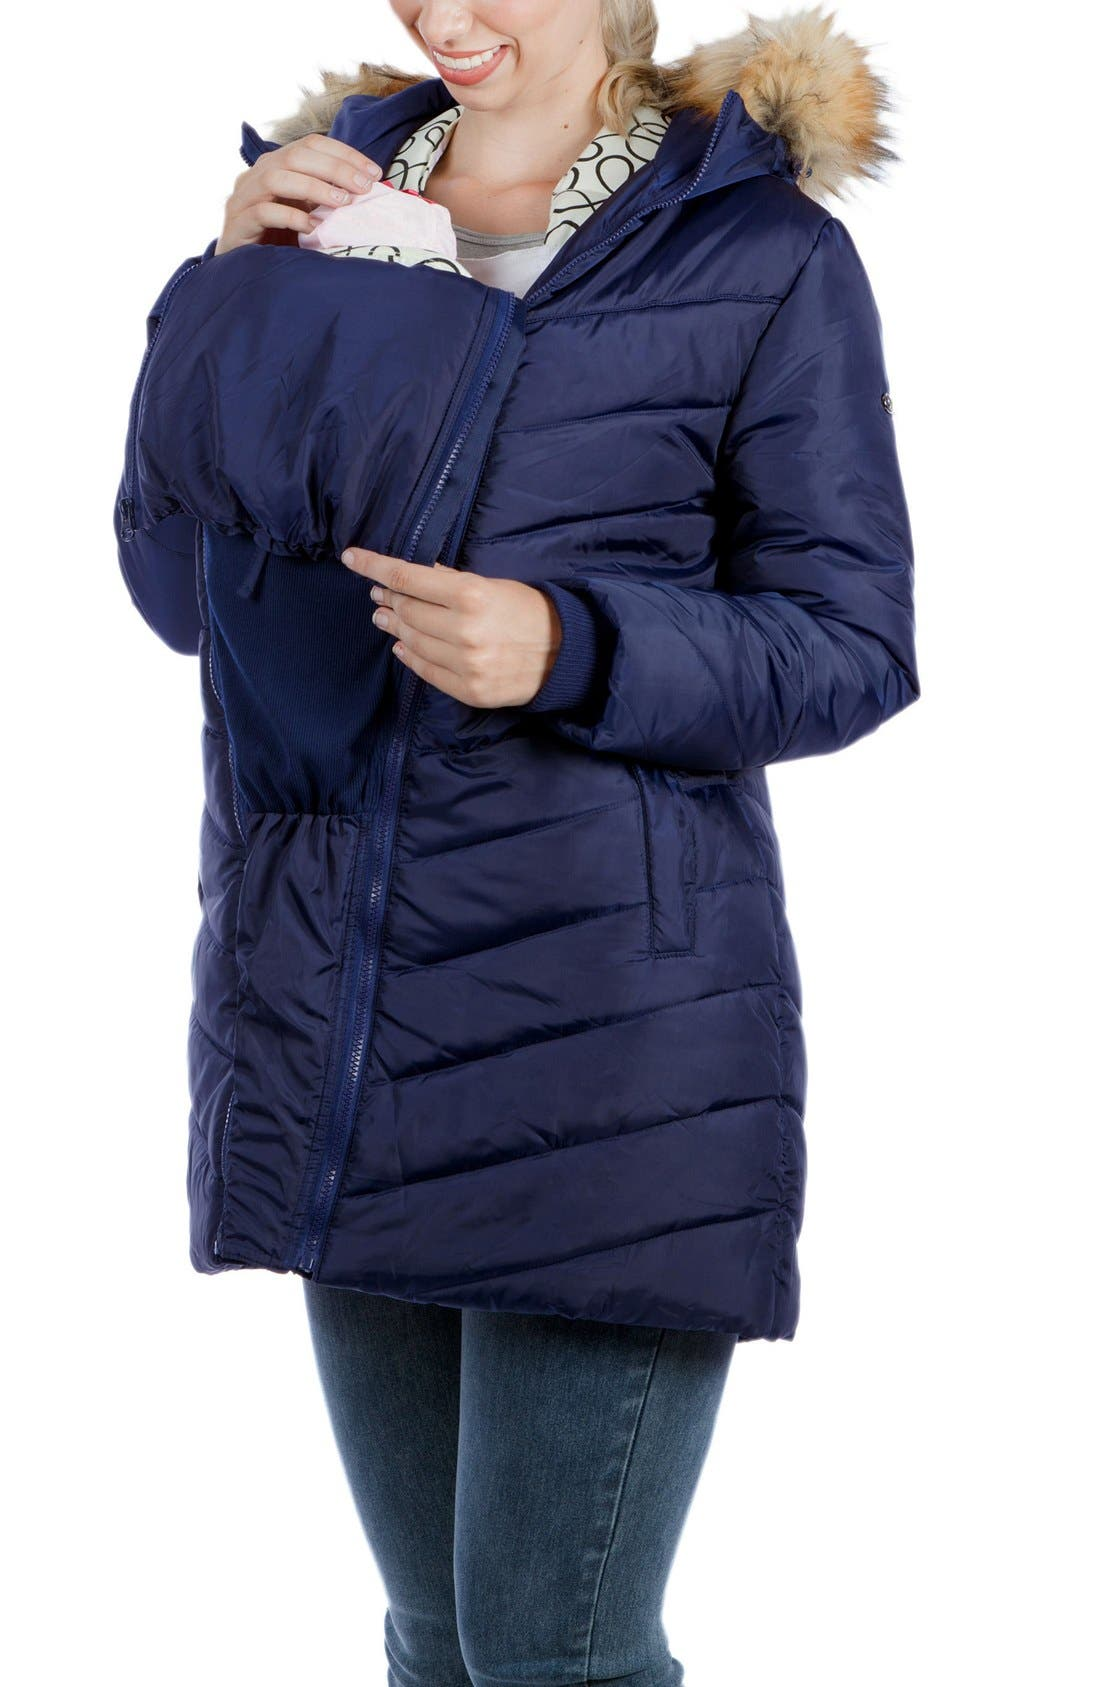 Faux Fur Trim Convertible Puffer 3-in-1 Maternity Jacket,                             Alternate thumbnail 6, color,                             Navy